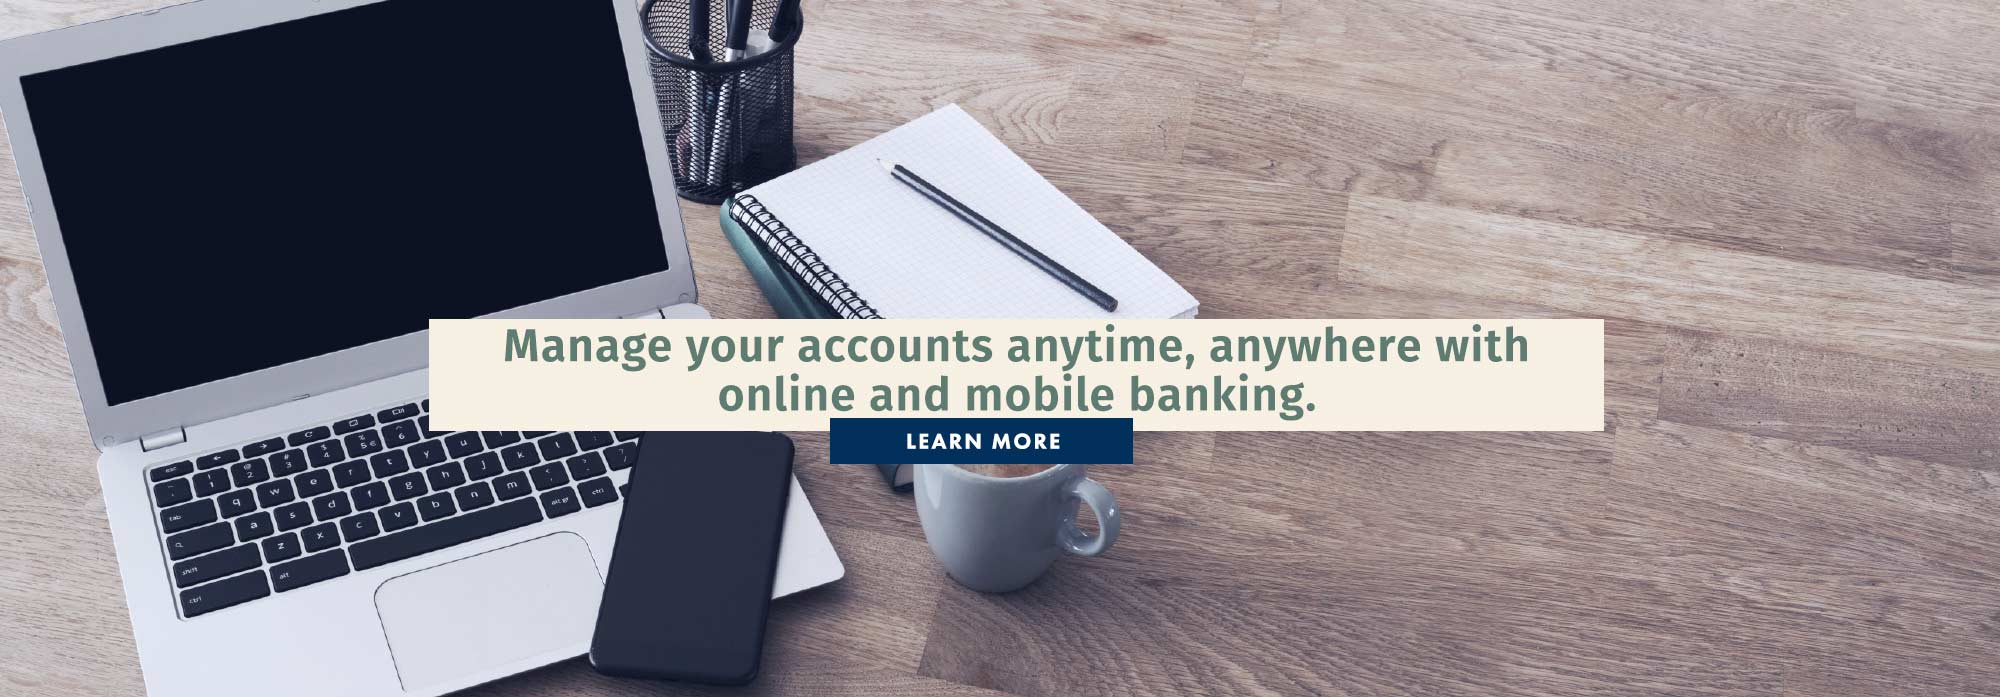 Manage your accounts anytime, anywhere with online and mobile banking